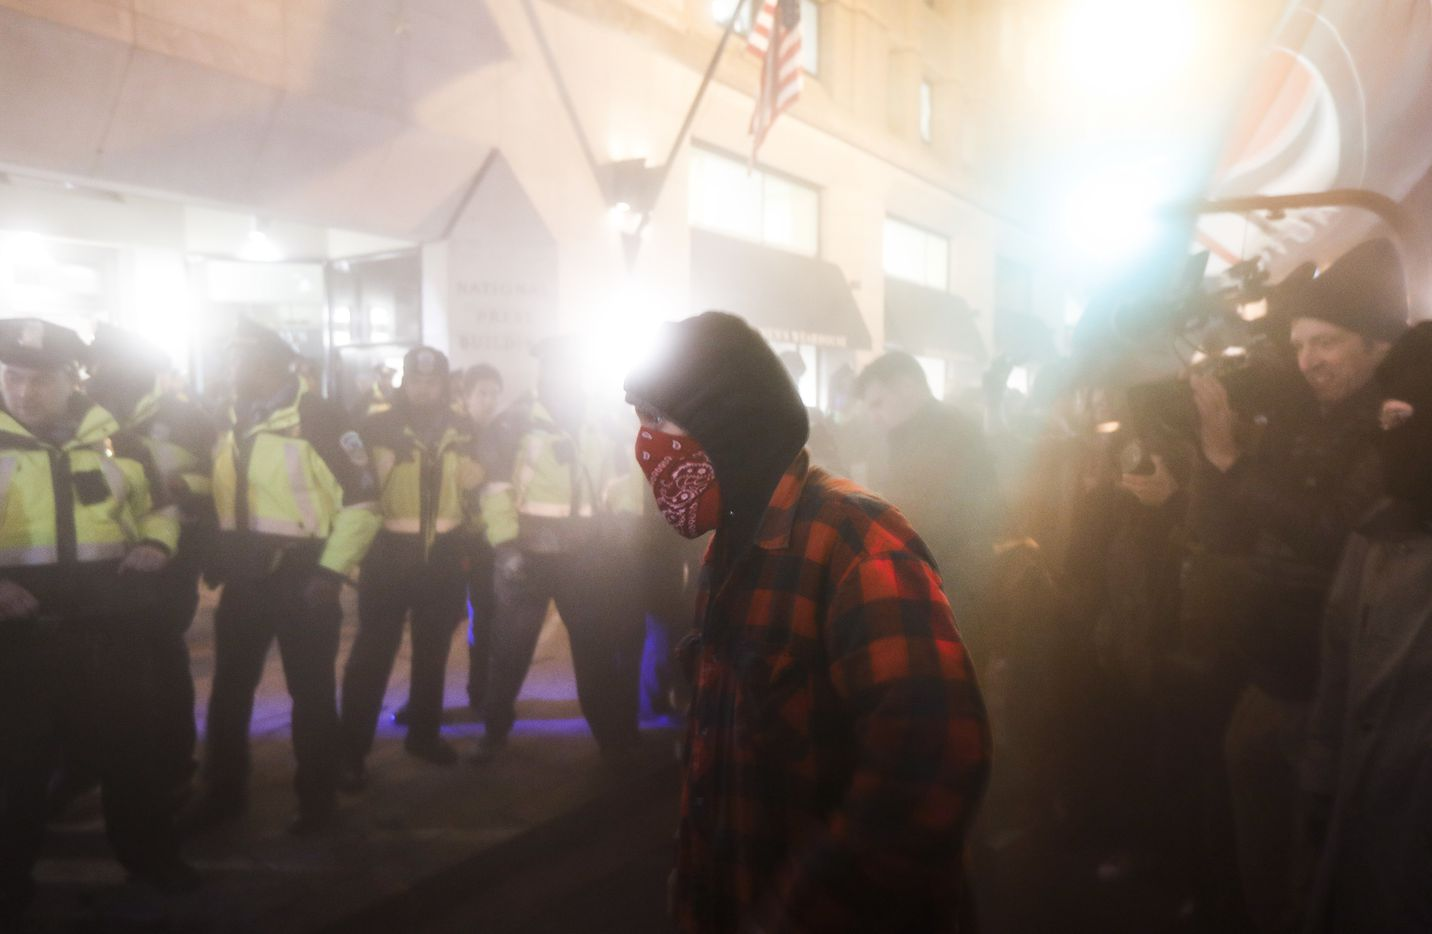 A protester walks through a cloud of gas sprayed by police following outside the National Press Club Thursday, Jan. 19, 2017, in Washington.